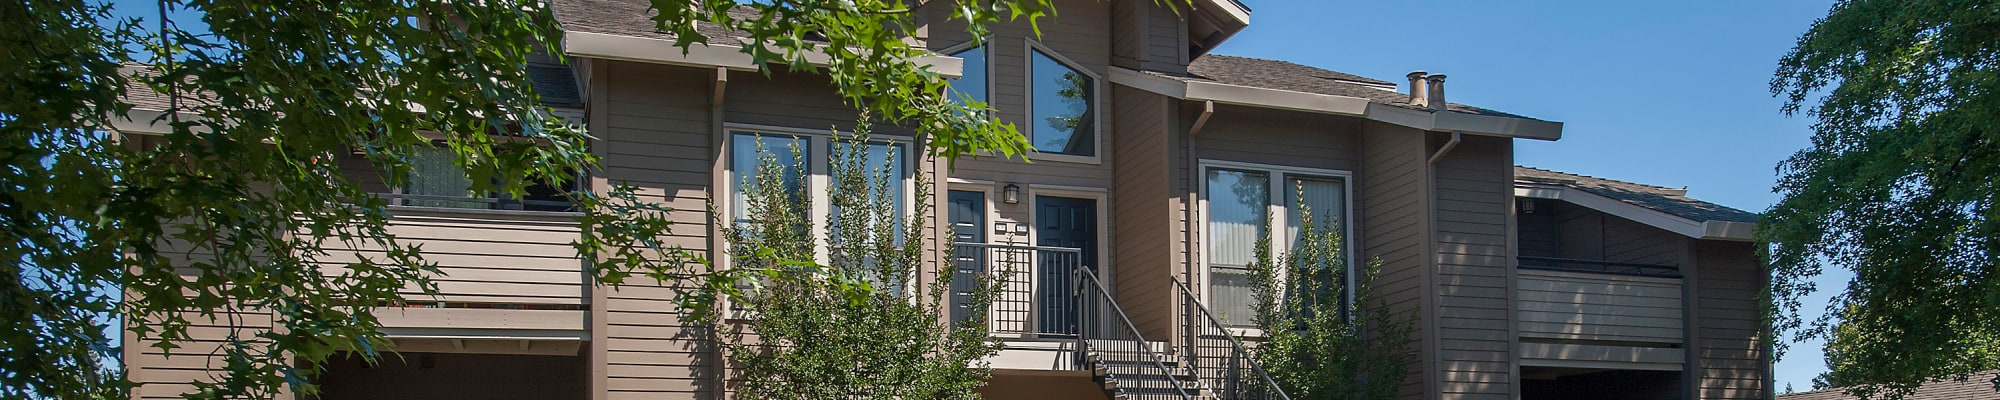 Photo gallery at Deer Valley Apartment Homes in Roseville, California